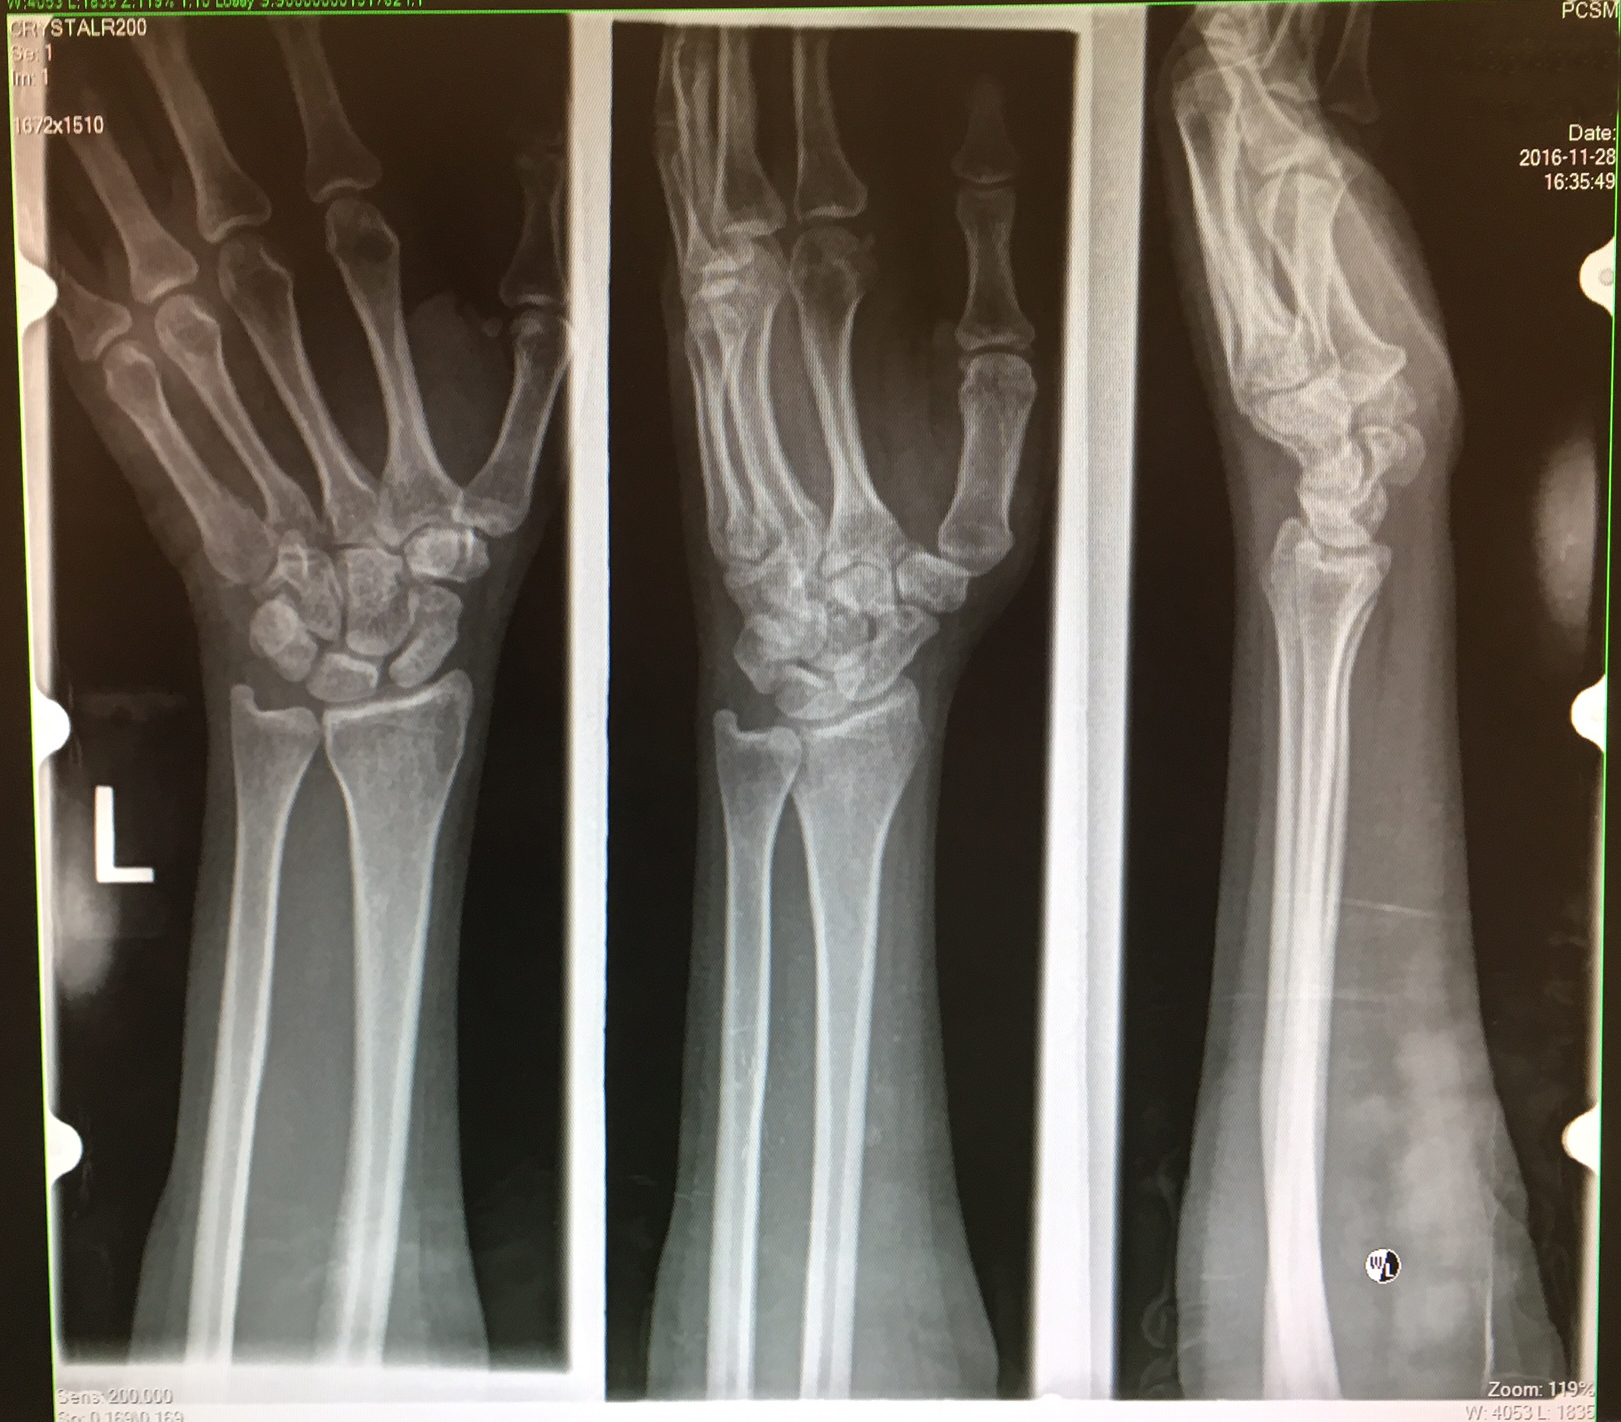 Pason, X-Ray, Fractured Left Wrist